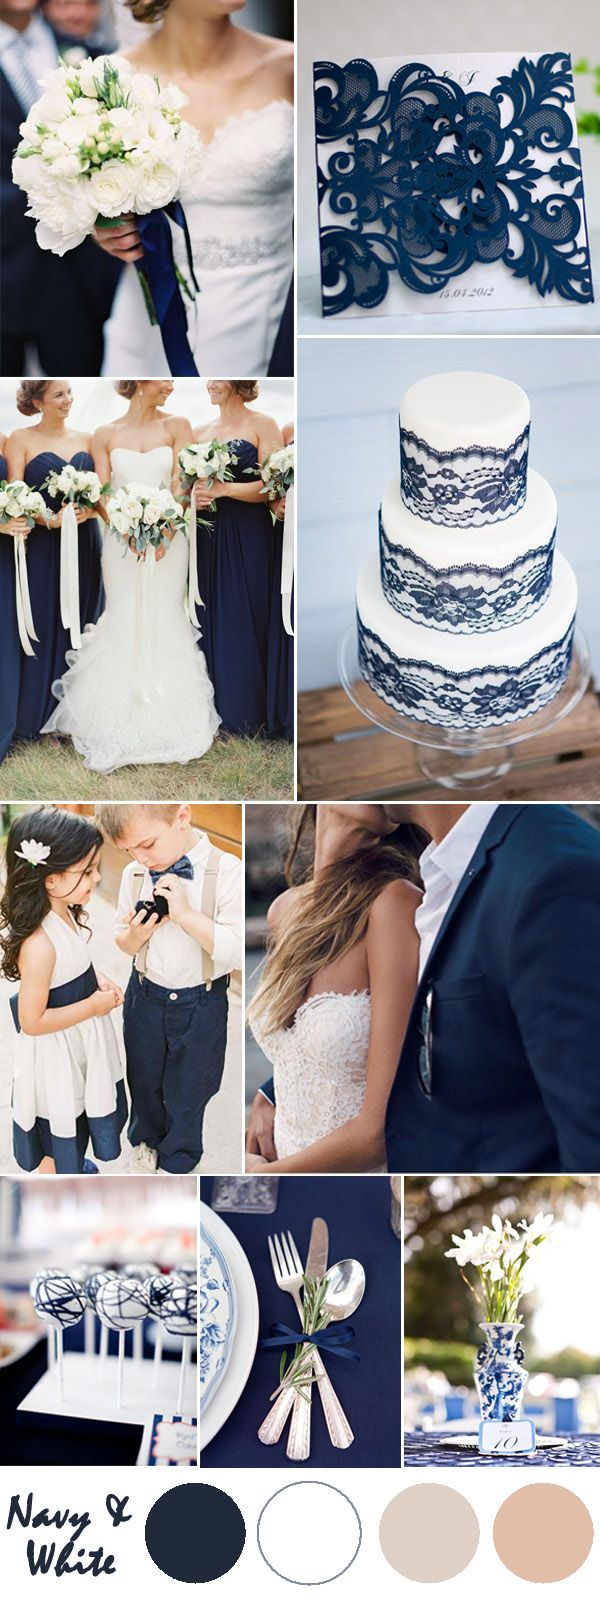 1950's wedding decorations november 2018  best Ideas images on Pinterest  Wedding ideas Wedding colors and